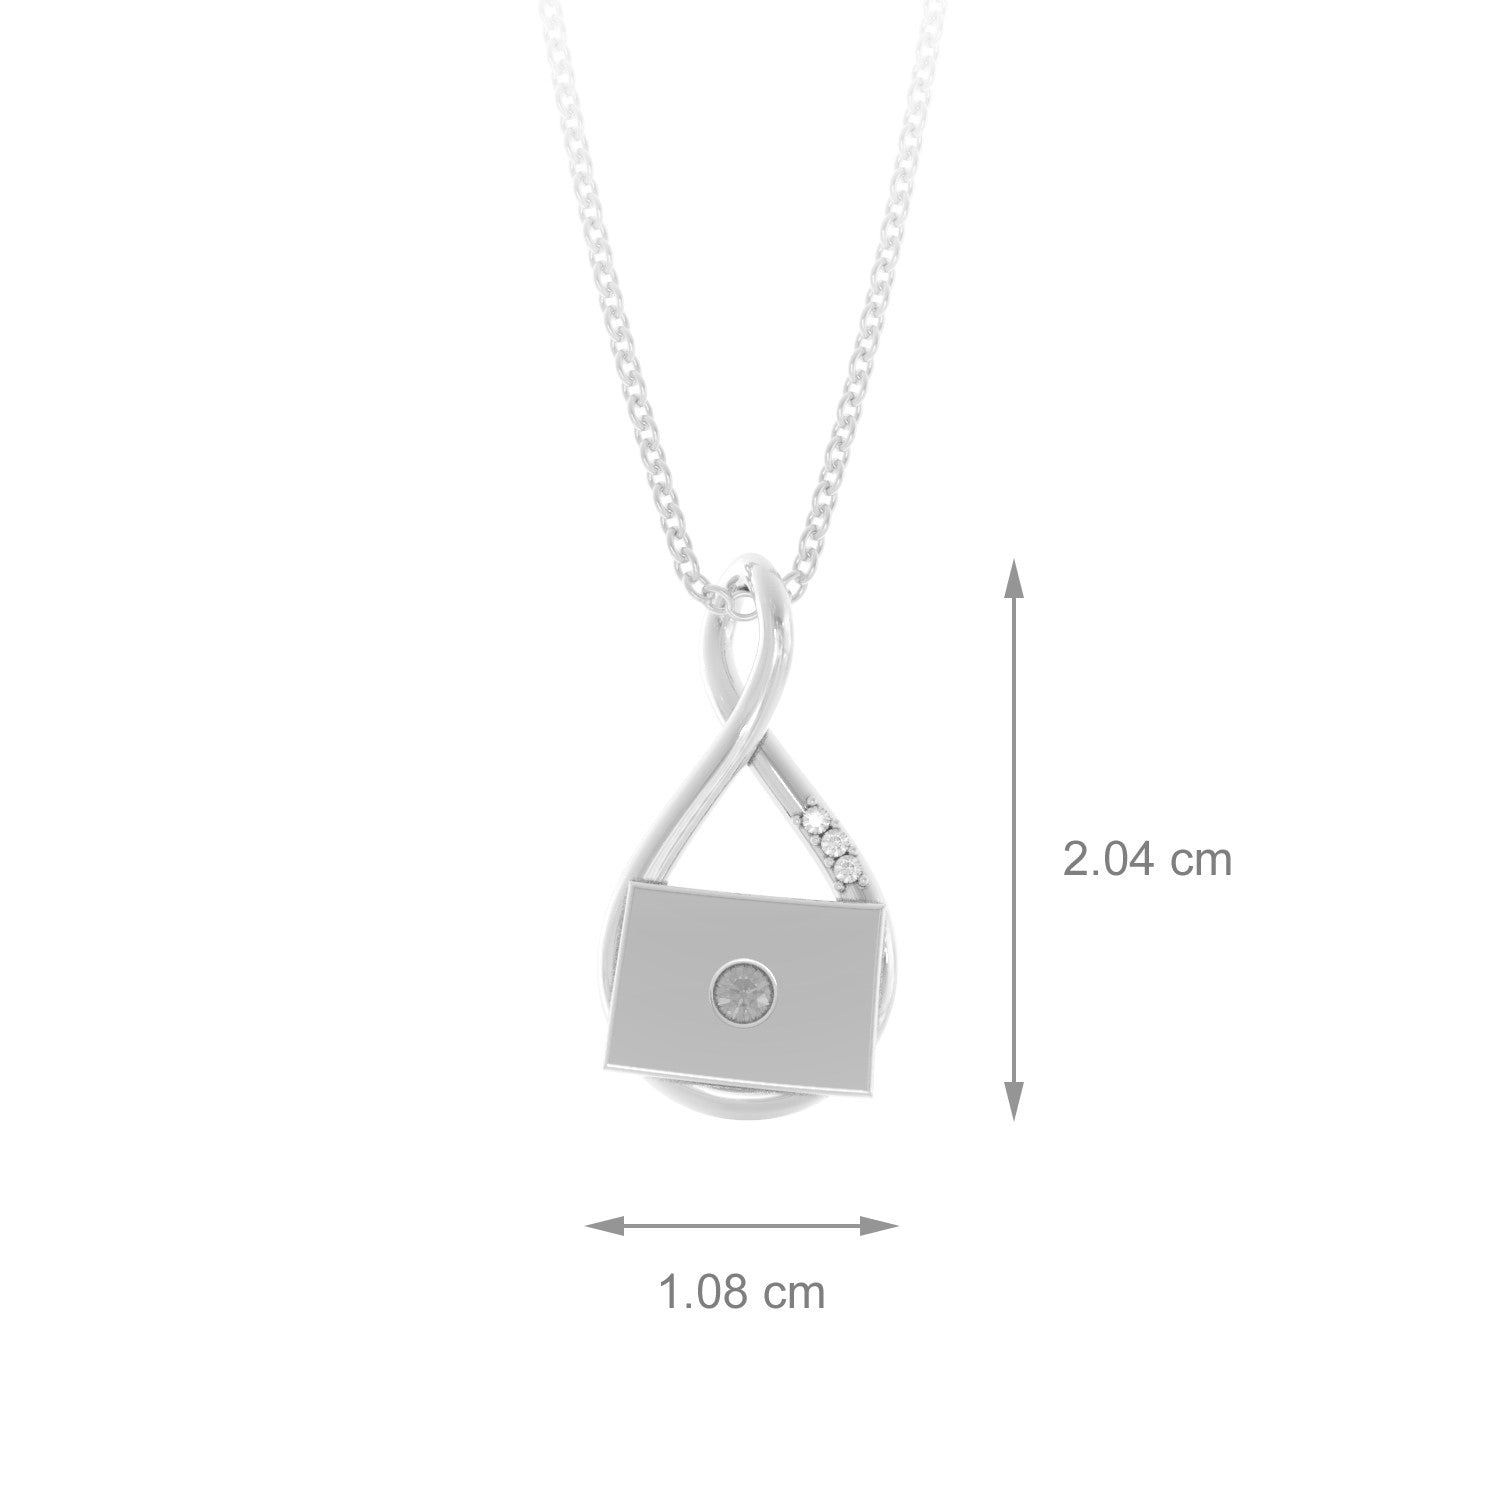 Colorado Caperci Infinity Pendant Necklace